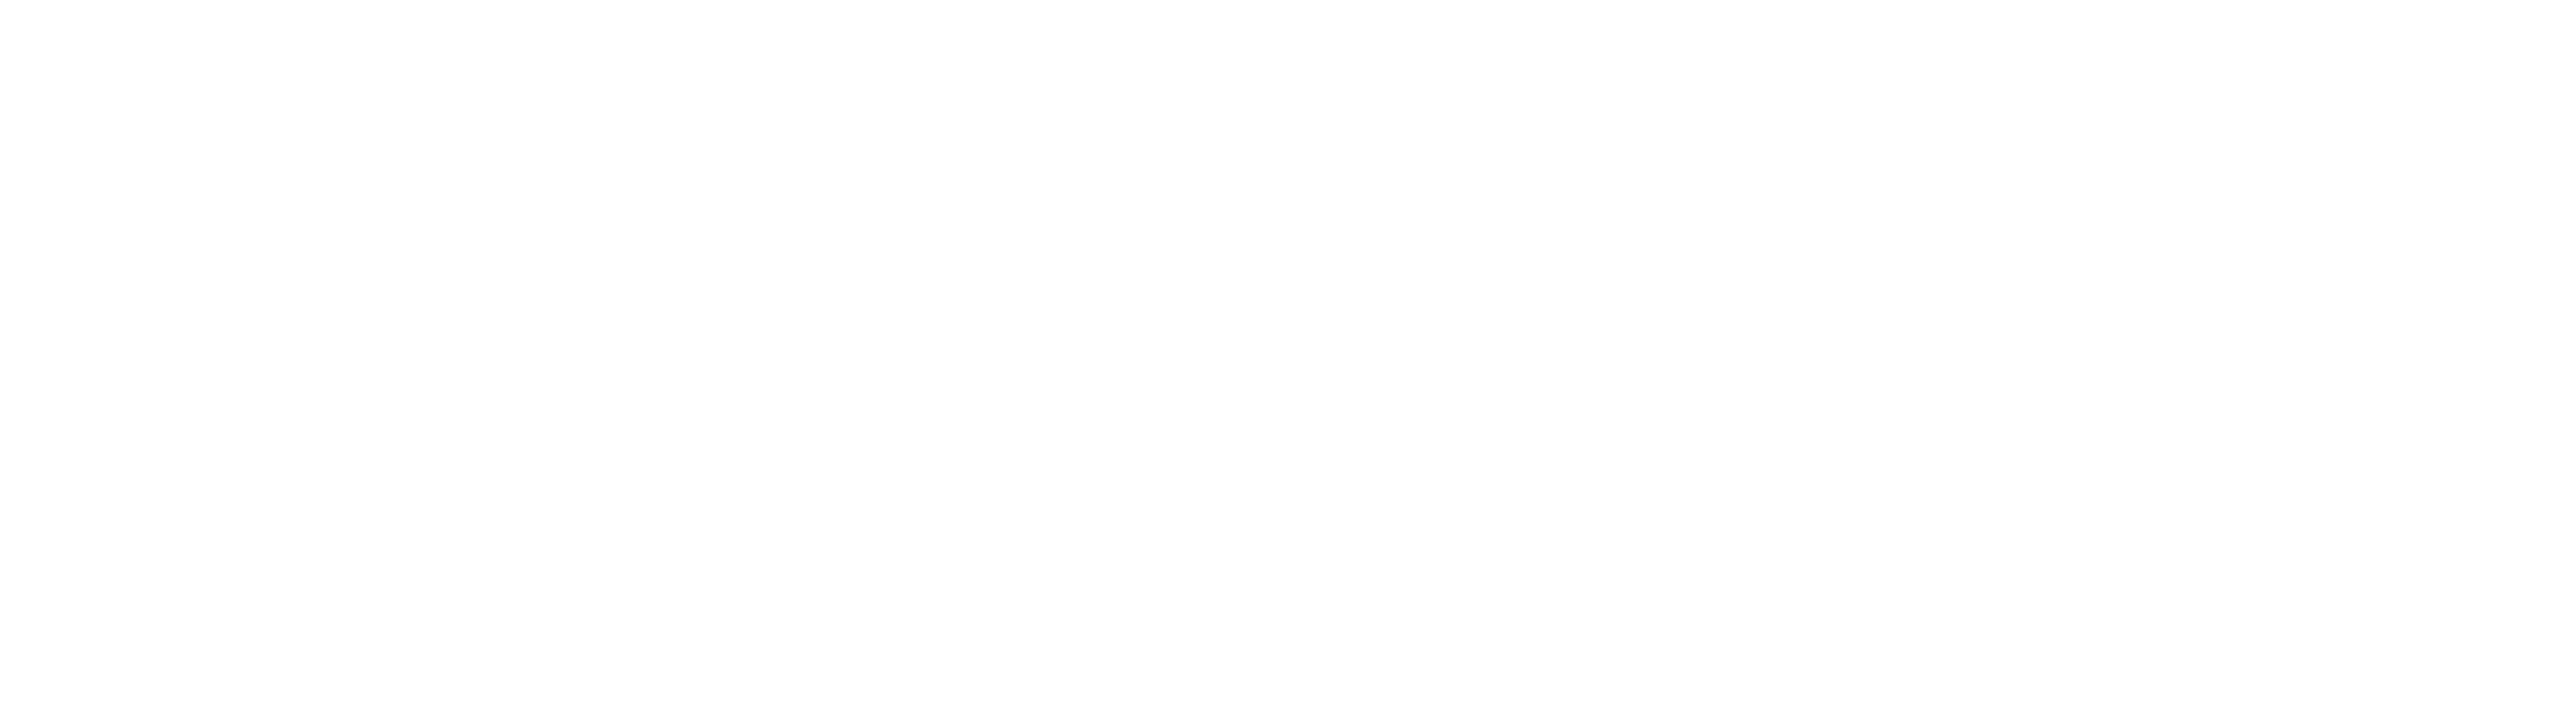 NEW-URBAN GROUP